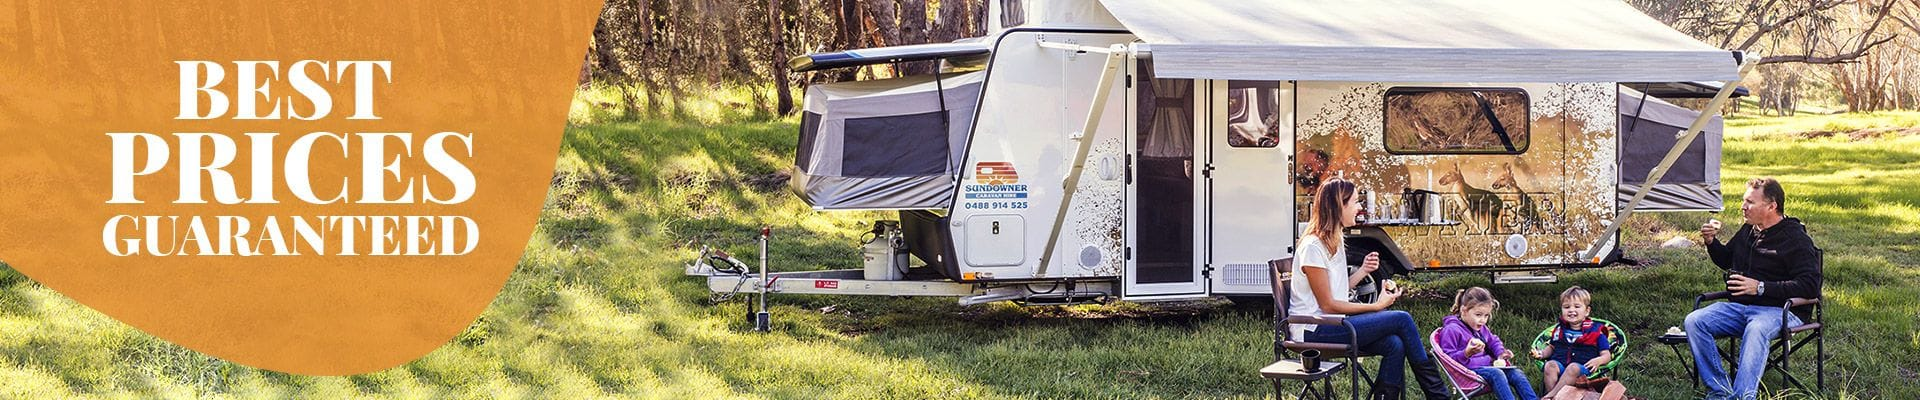 About Sundowner Caravan Hire | Jayco Caravans For Hire Perth